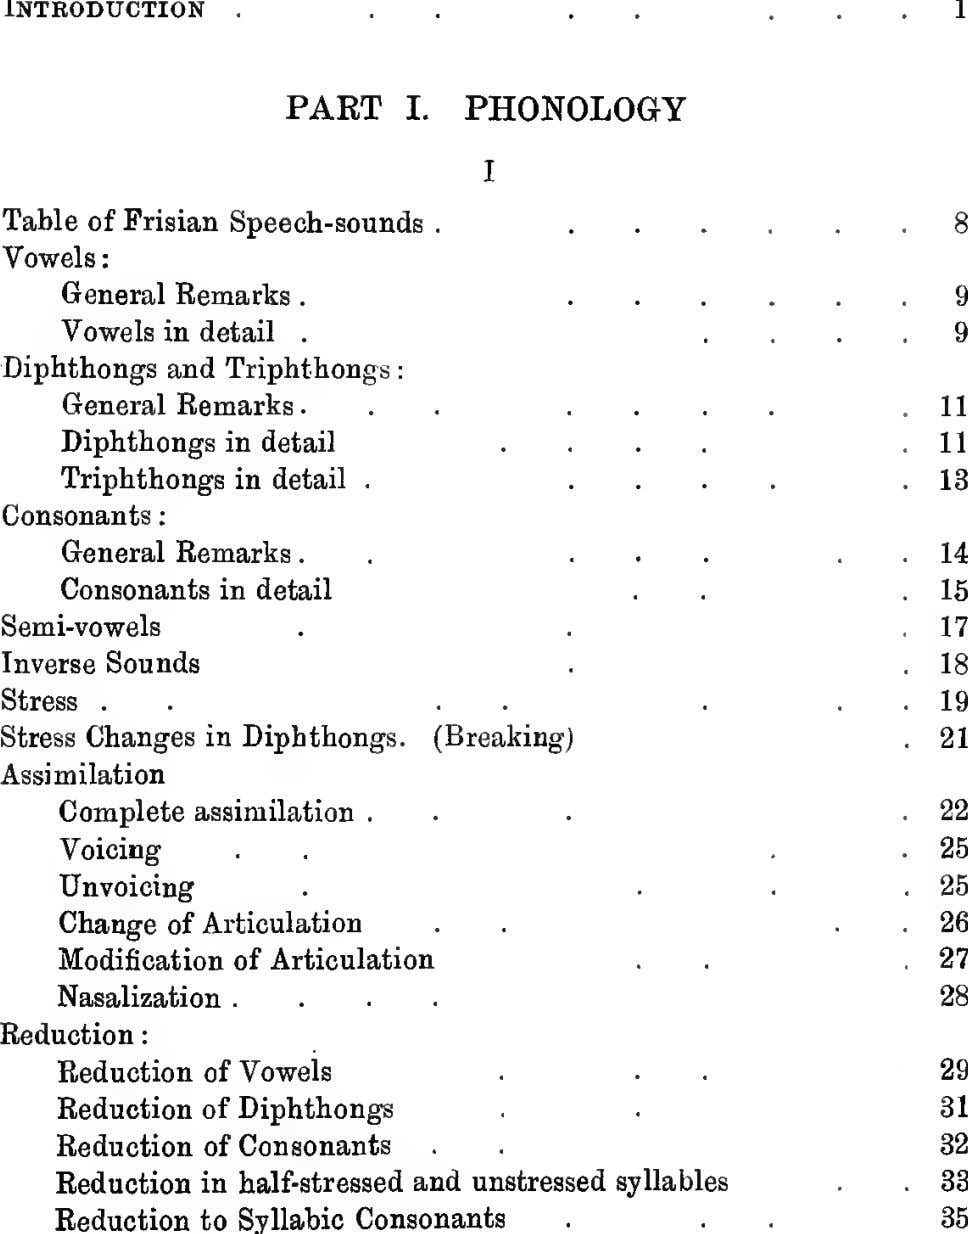 Introduction 1 . . . . PART I. PHONOLOGY I Table of Frisian Speech-sounds .